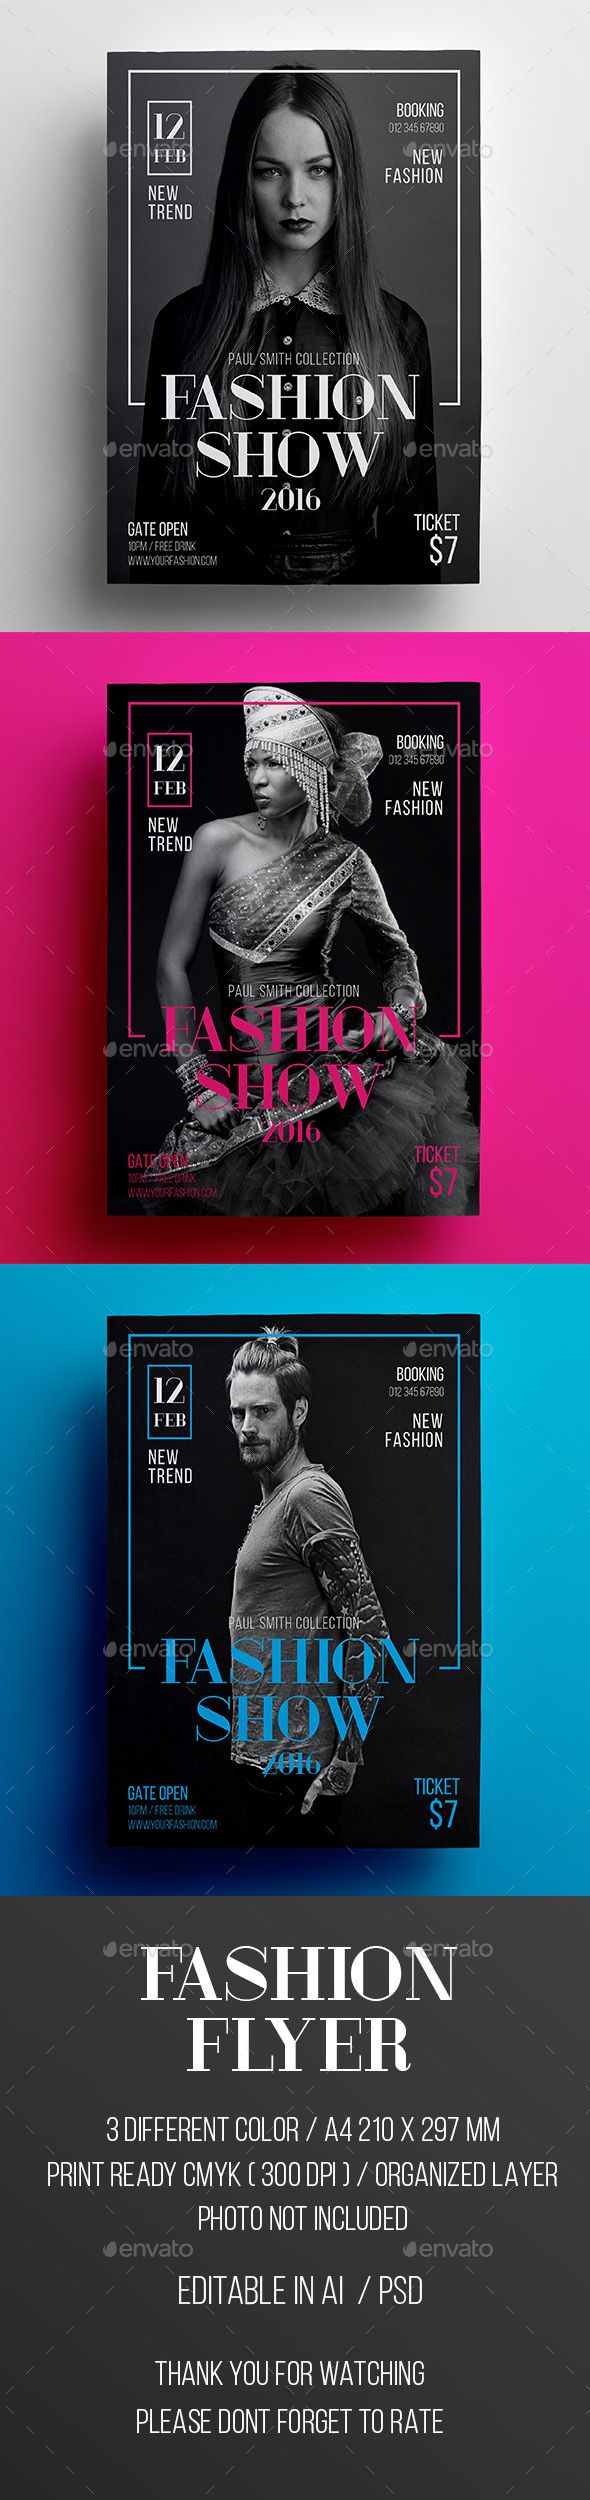 Poster design and printing - Fashion Show Flyer